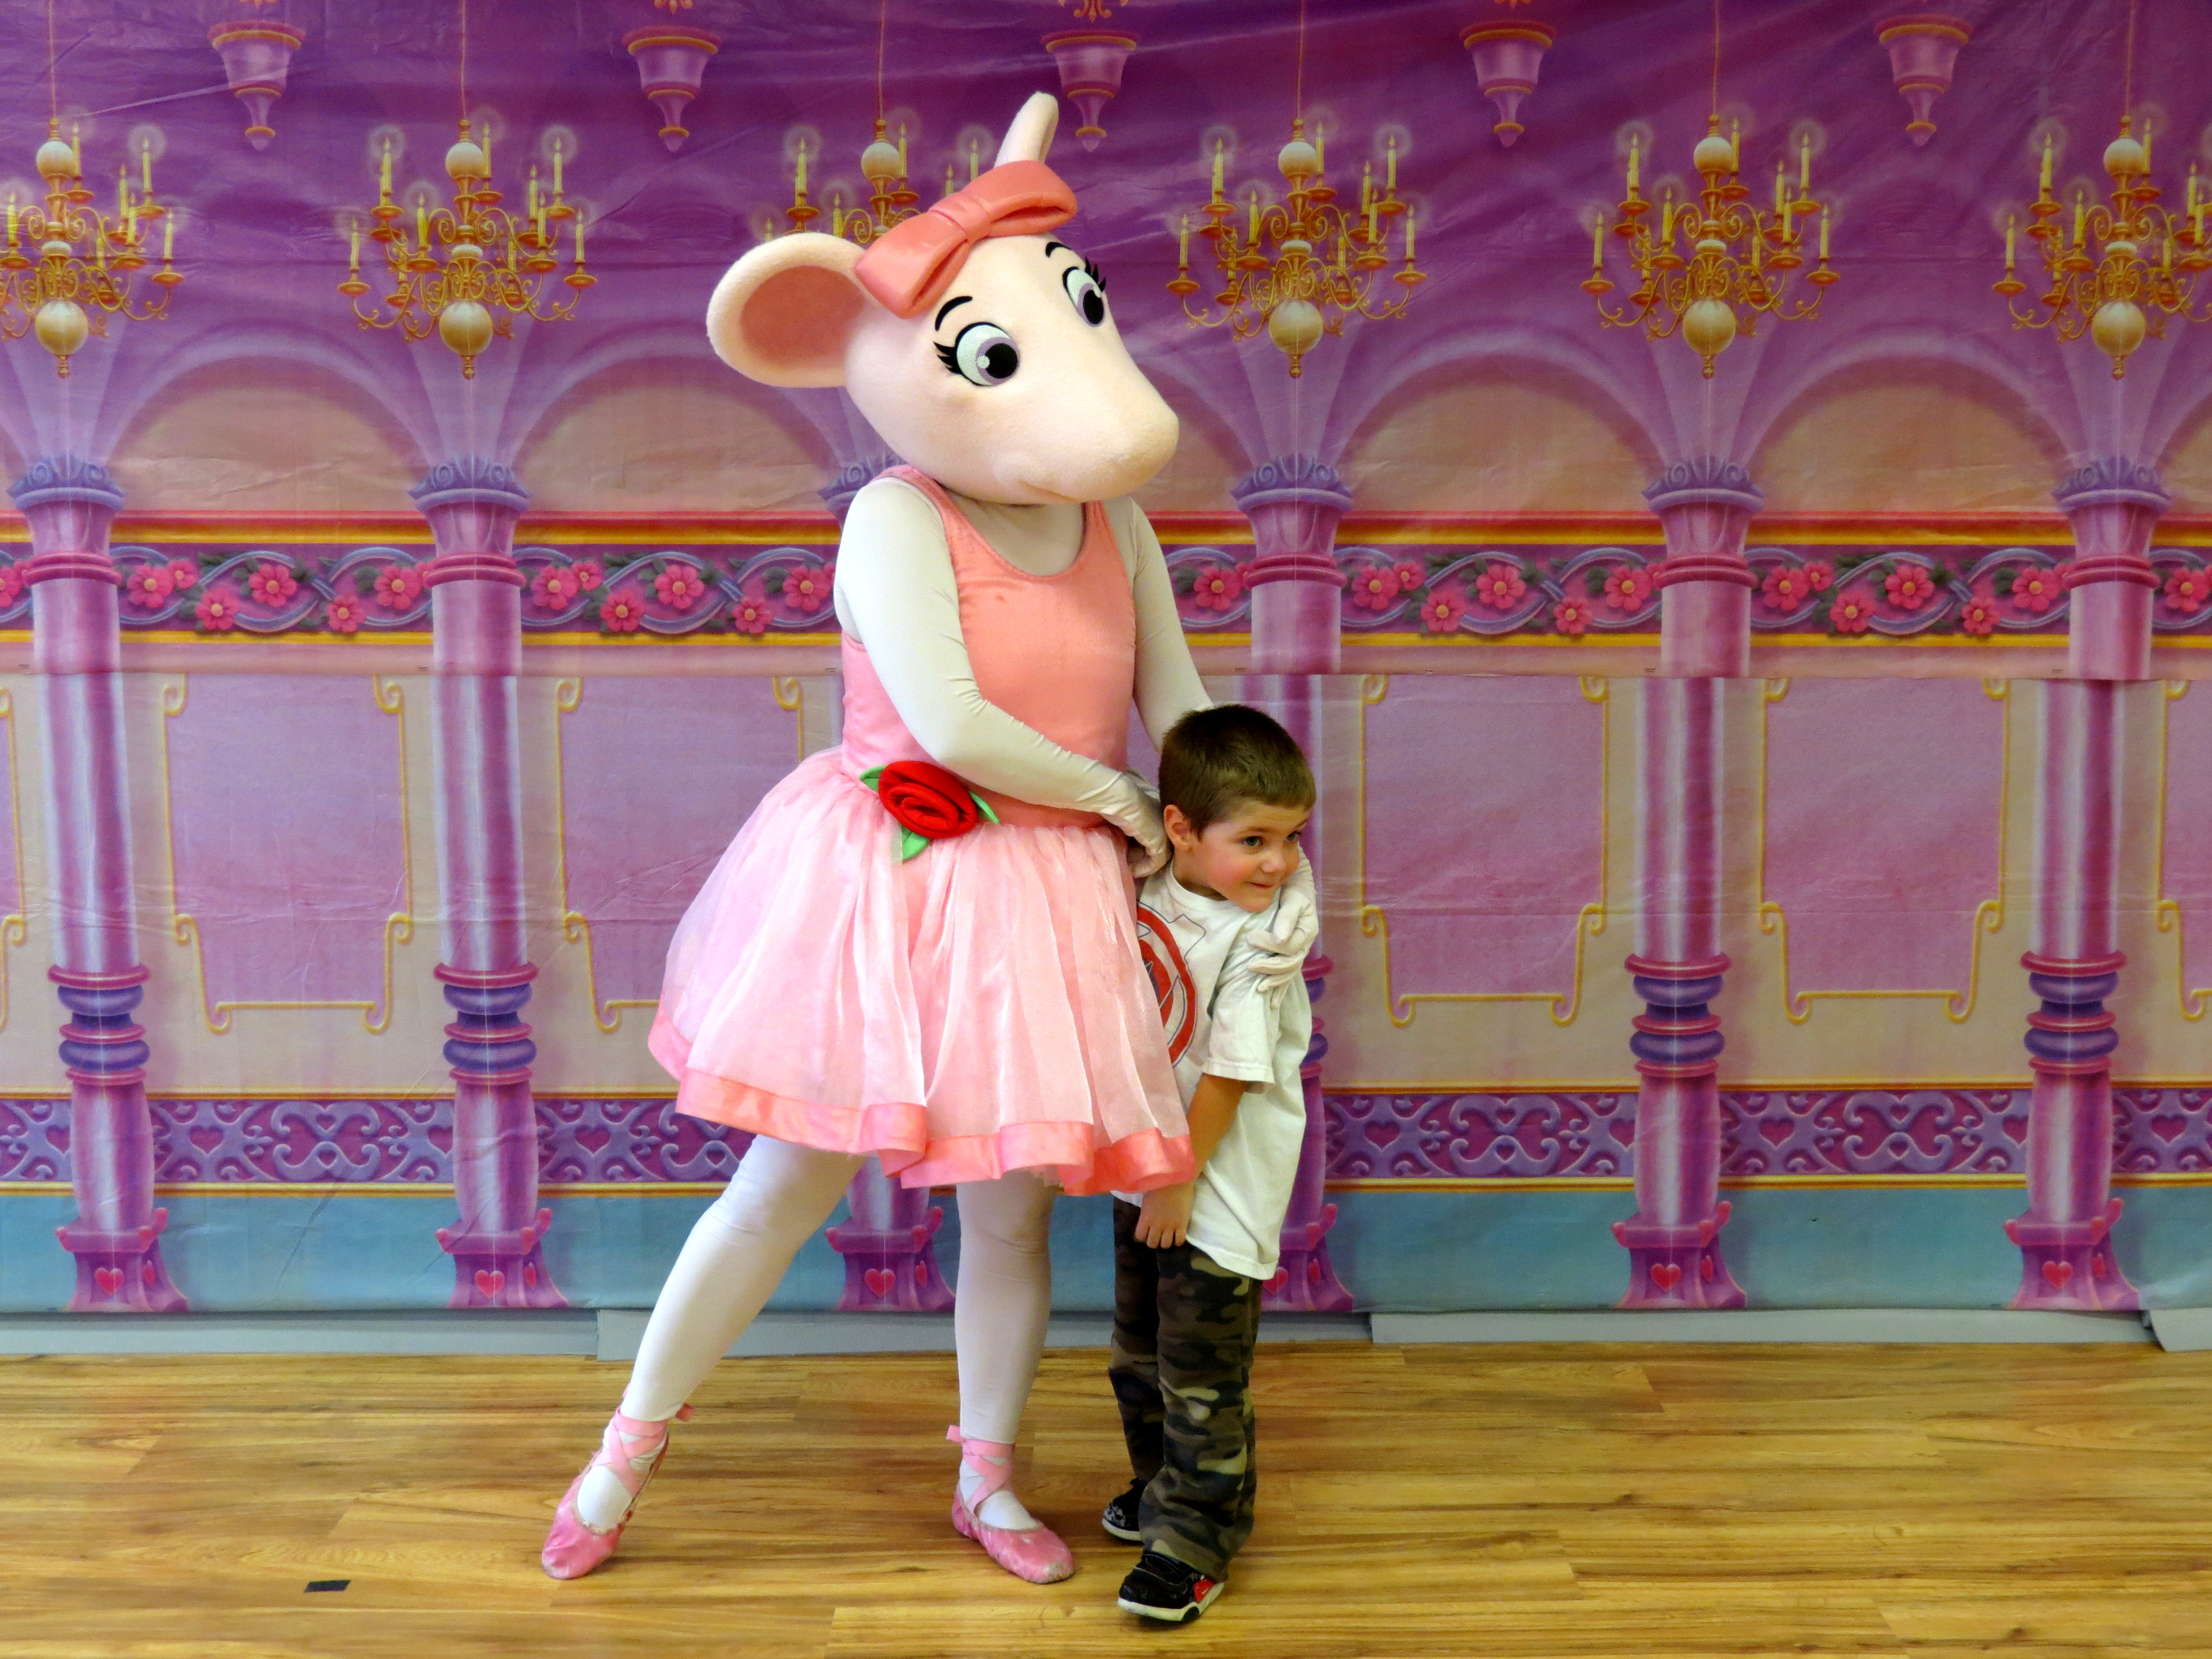 It's just an image of Sweet Angelina Ballerina Characters